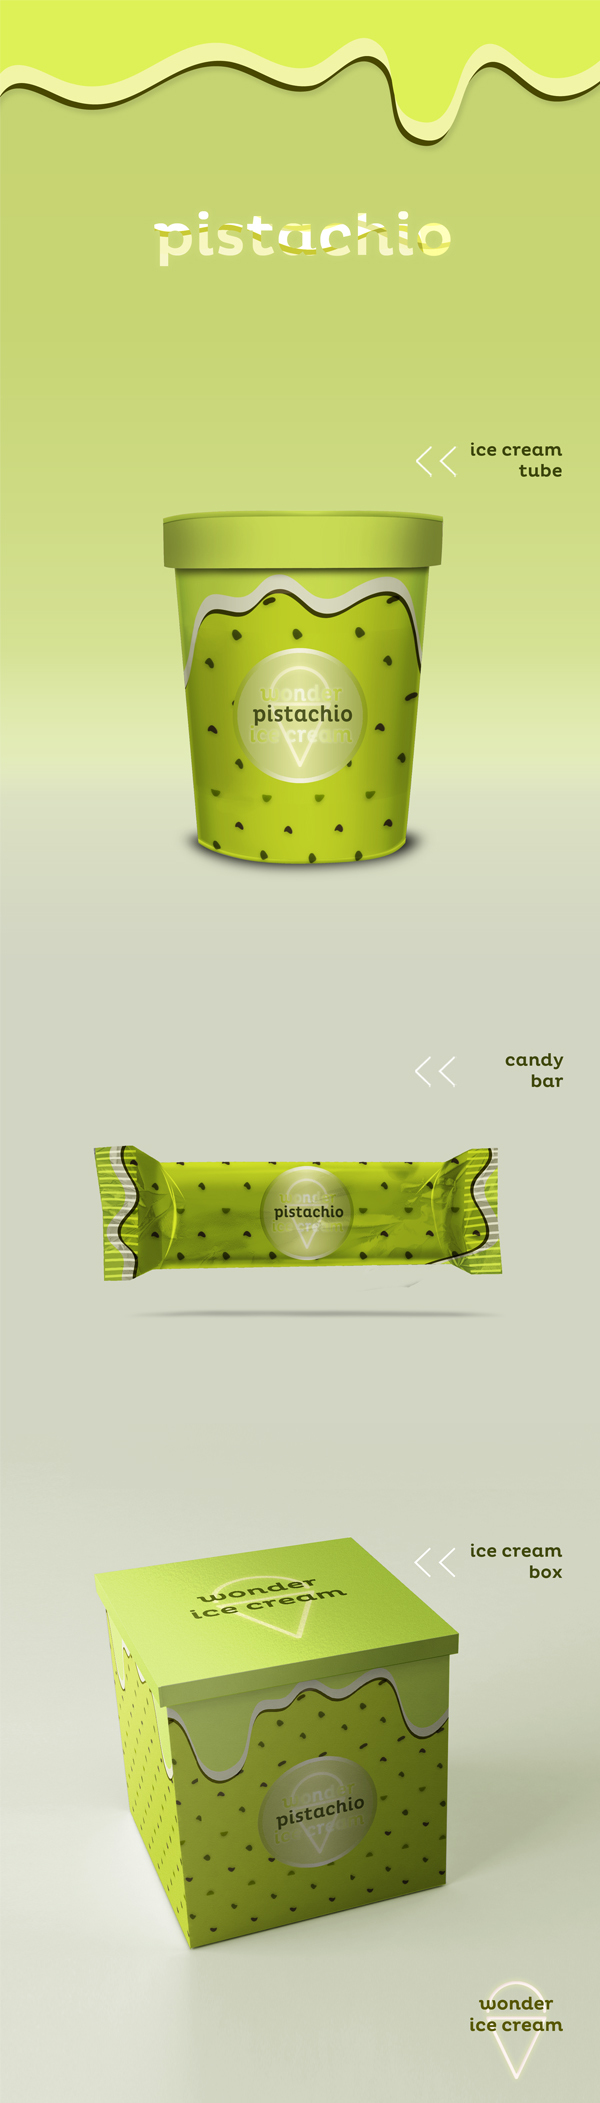 Pistachio_Ice-cream_and_Candy_Packaging